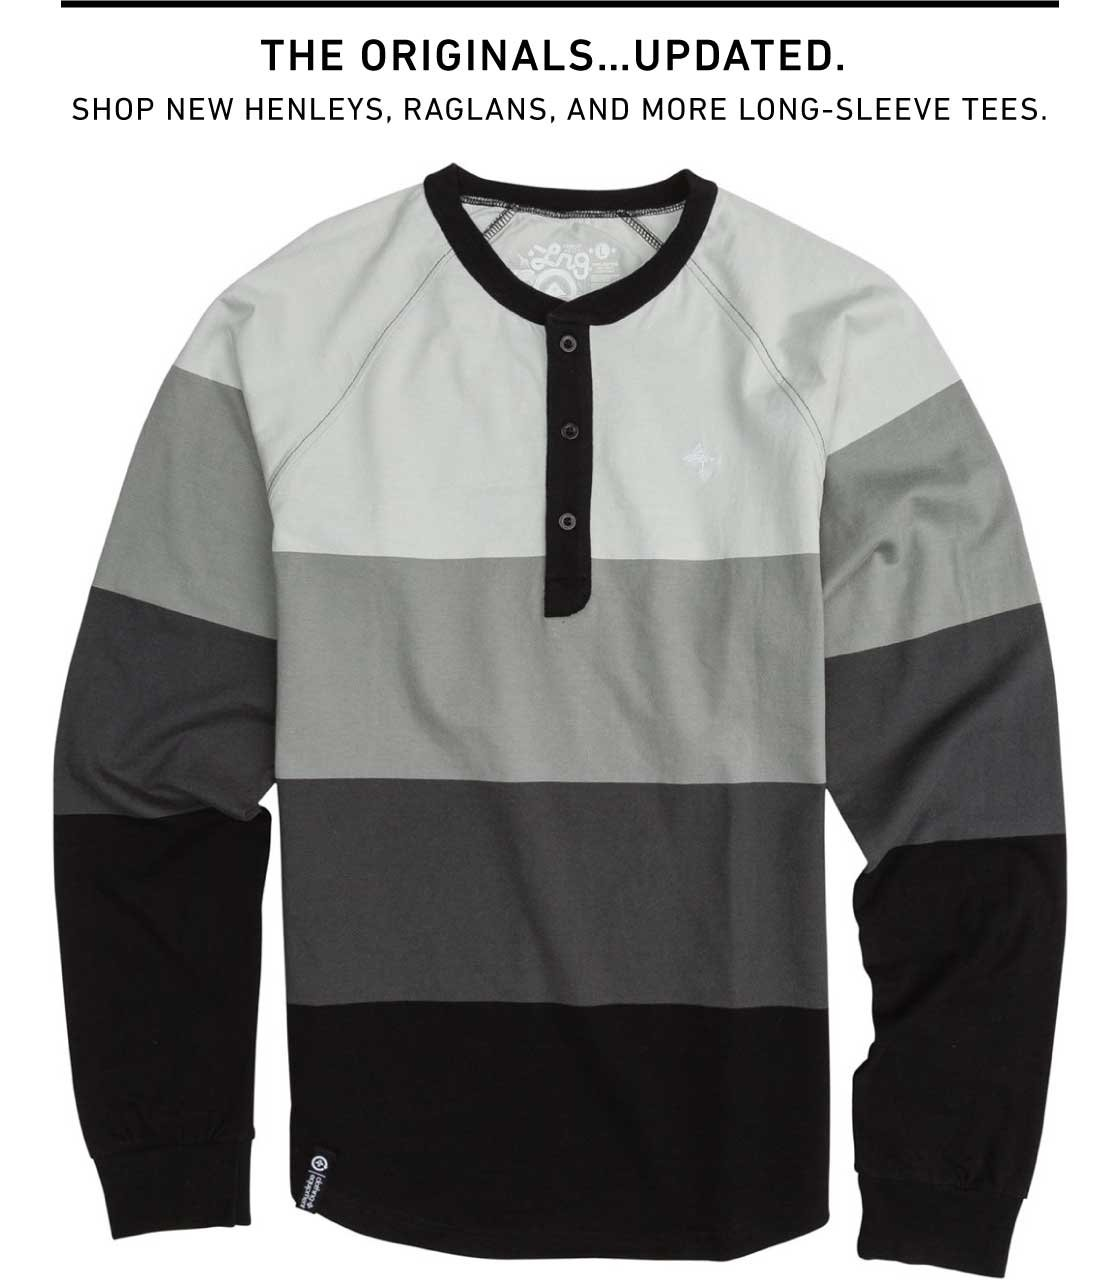 New Long Sleeve Tees and Henleys